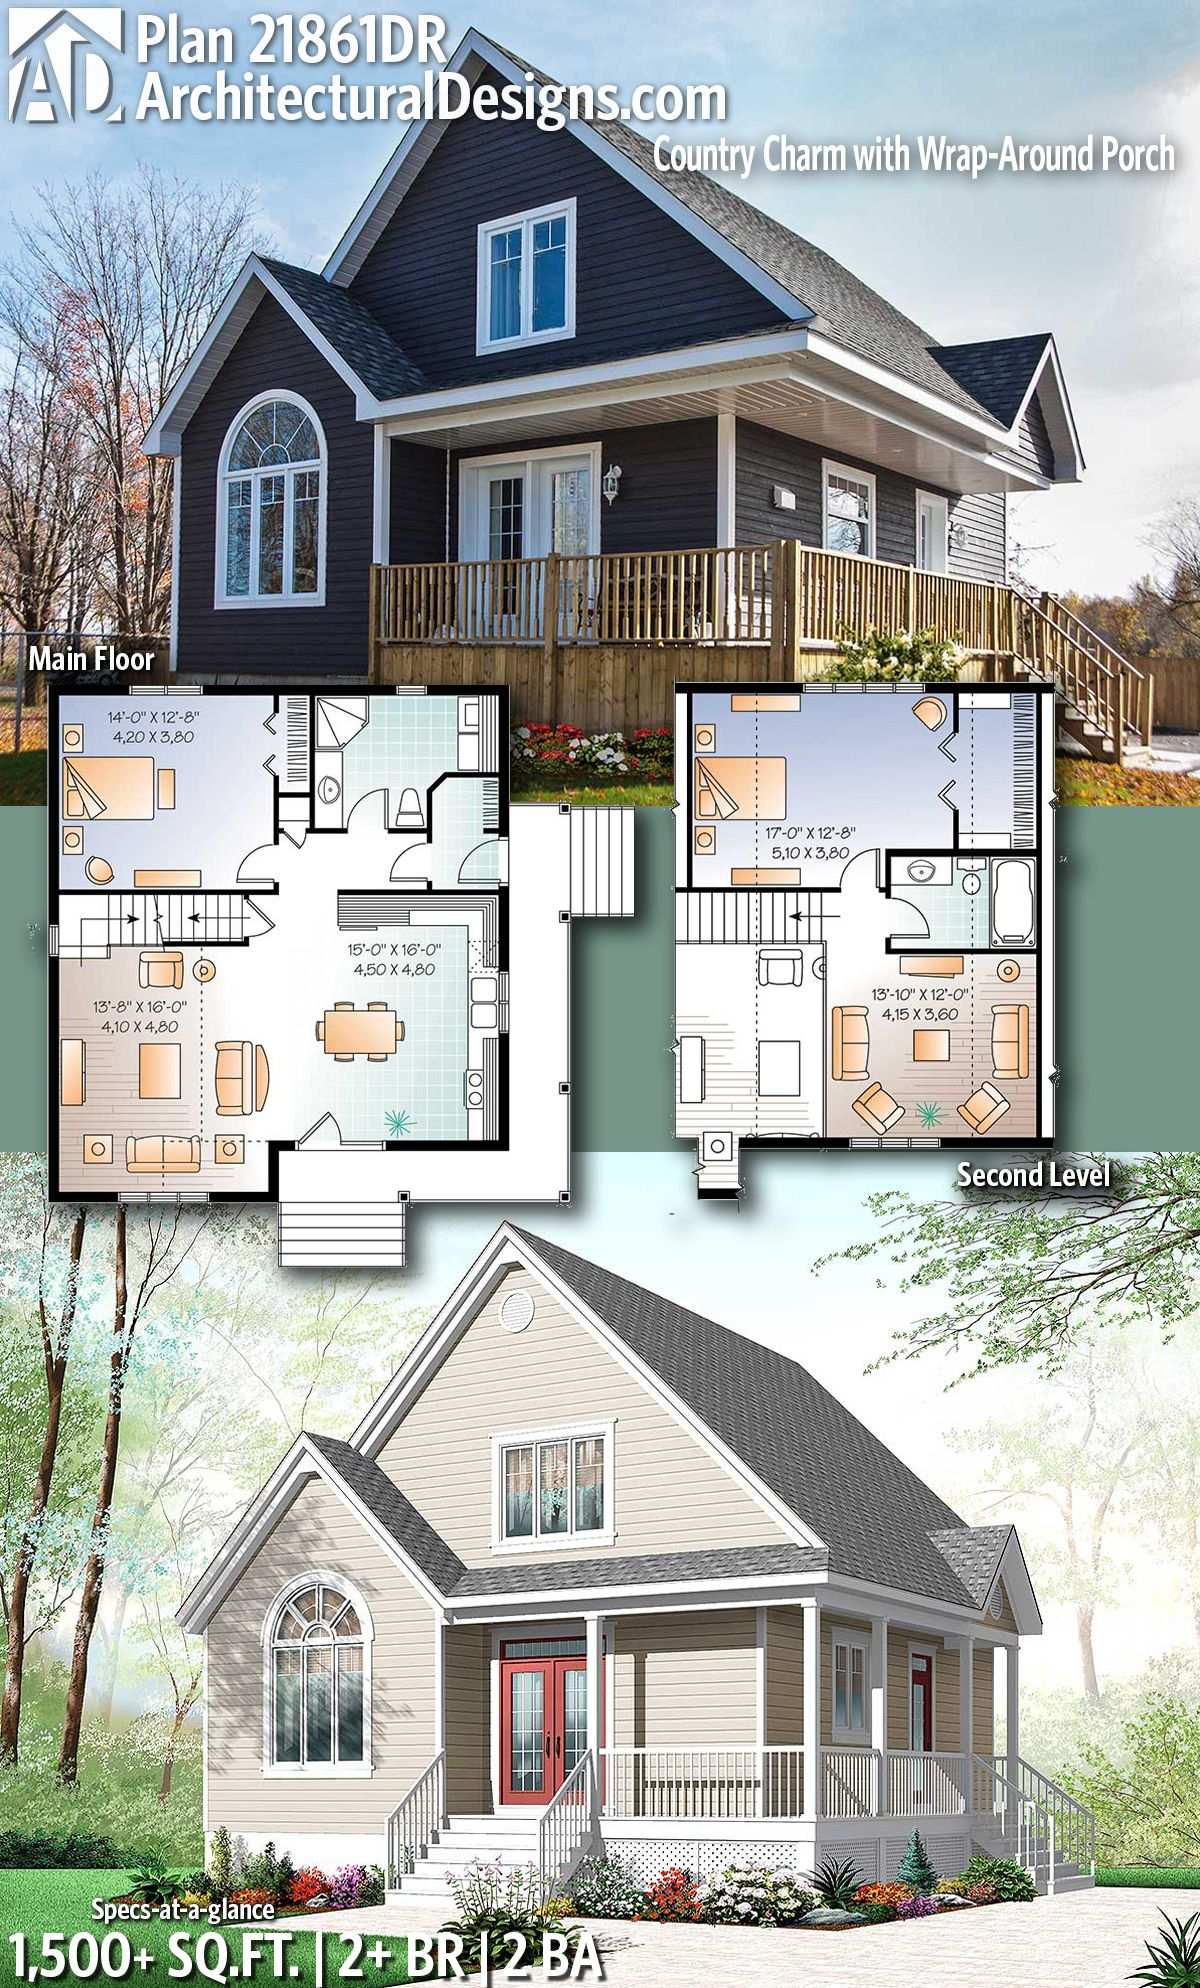 Architectural designs house plan 21861dr gives you 2 beds 2 baths and over 1500 sq ft of heated living space ready when you are